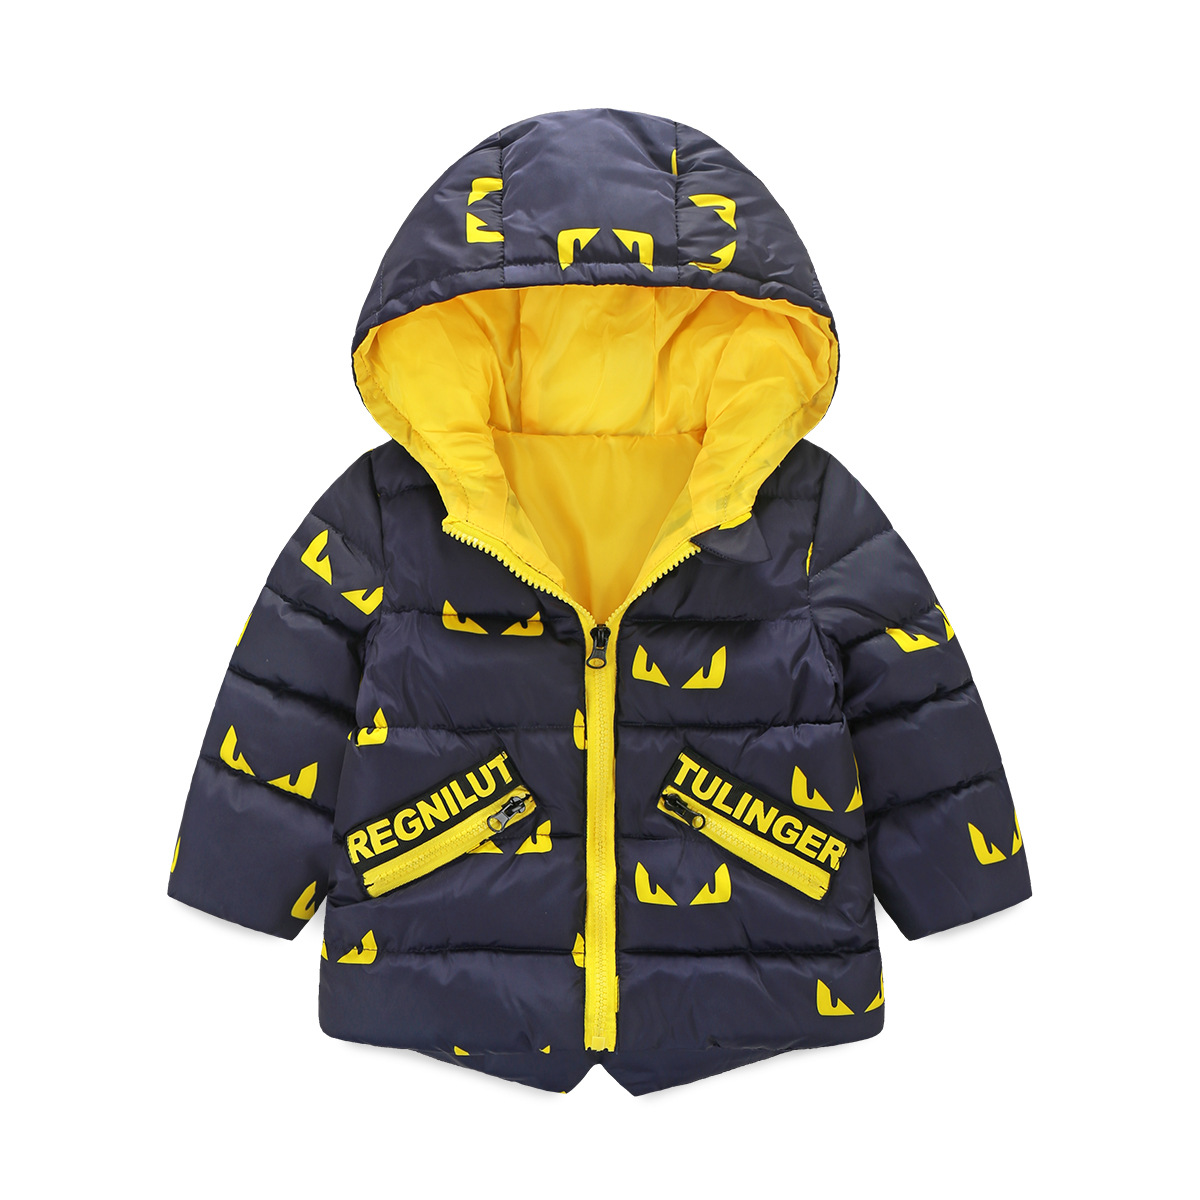 Fh203 2017 winter wadded jacket cotton-padded jacket small big boy wadded jacket thickening thermal cotton-padded jacketОдежда и ак�е��уары<br><br><br>Aliexpress